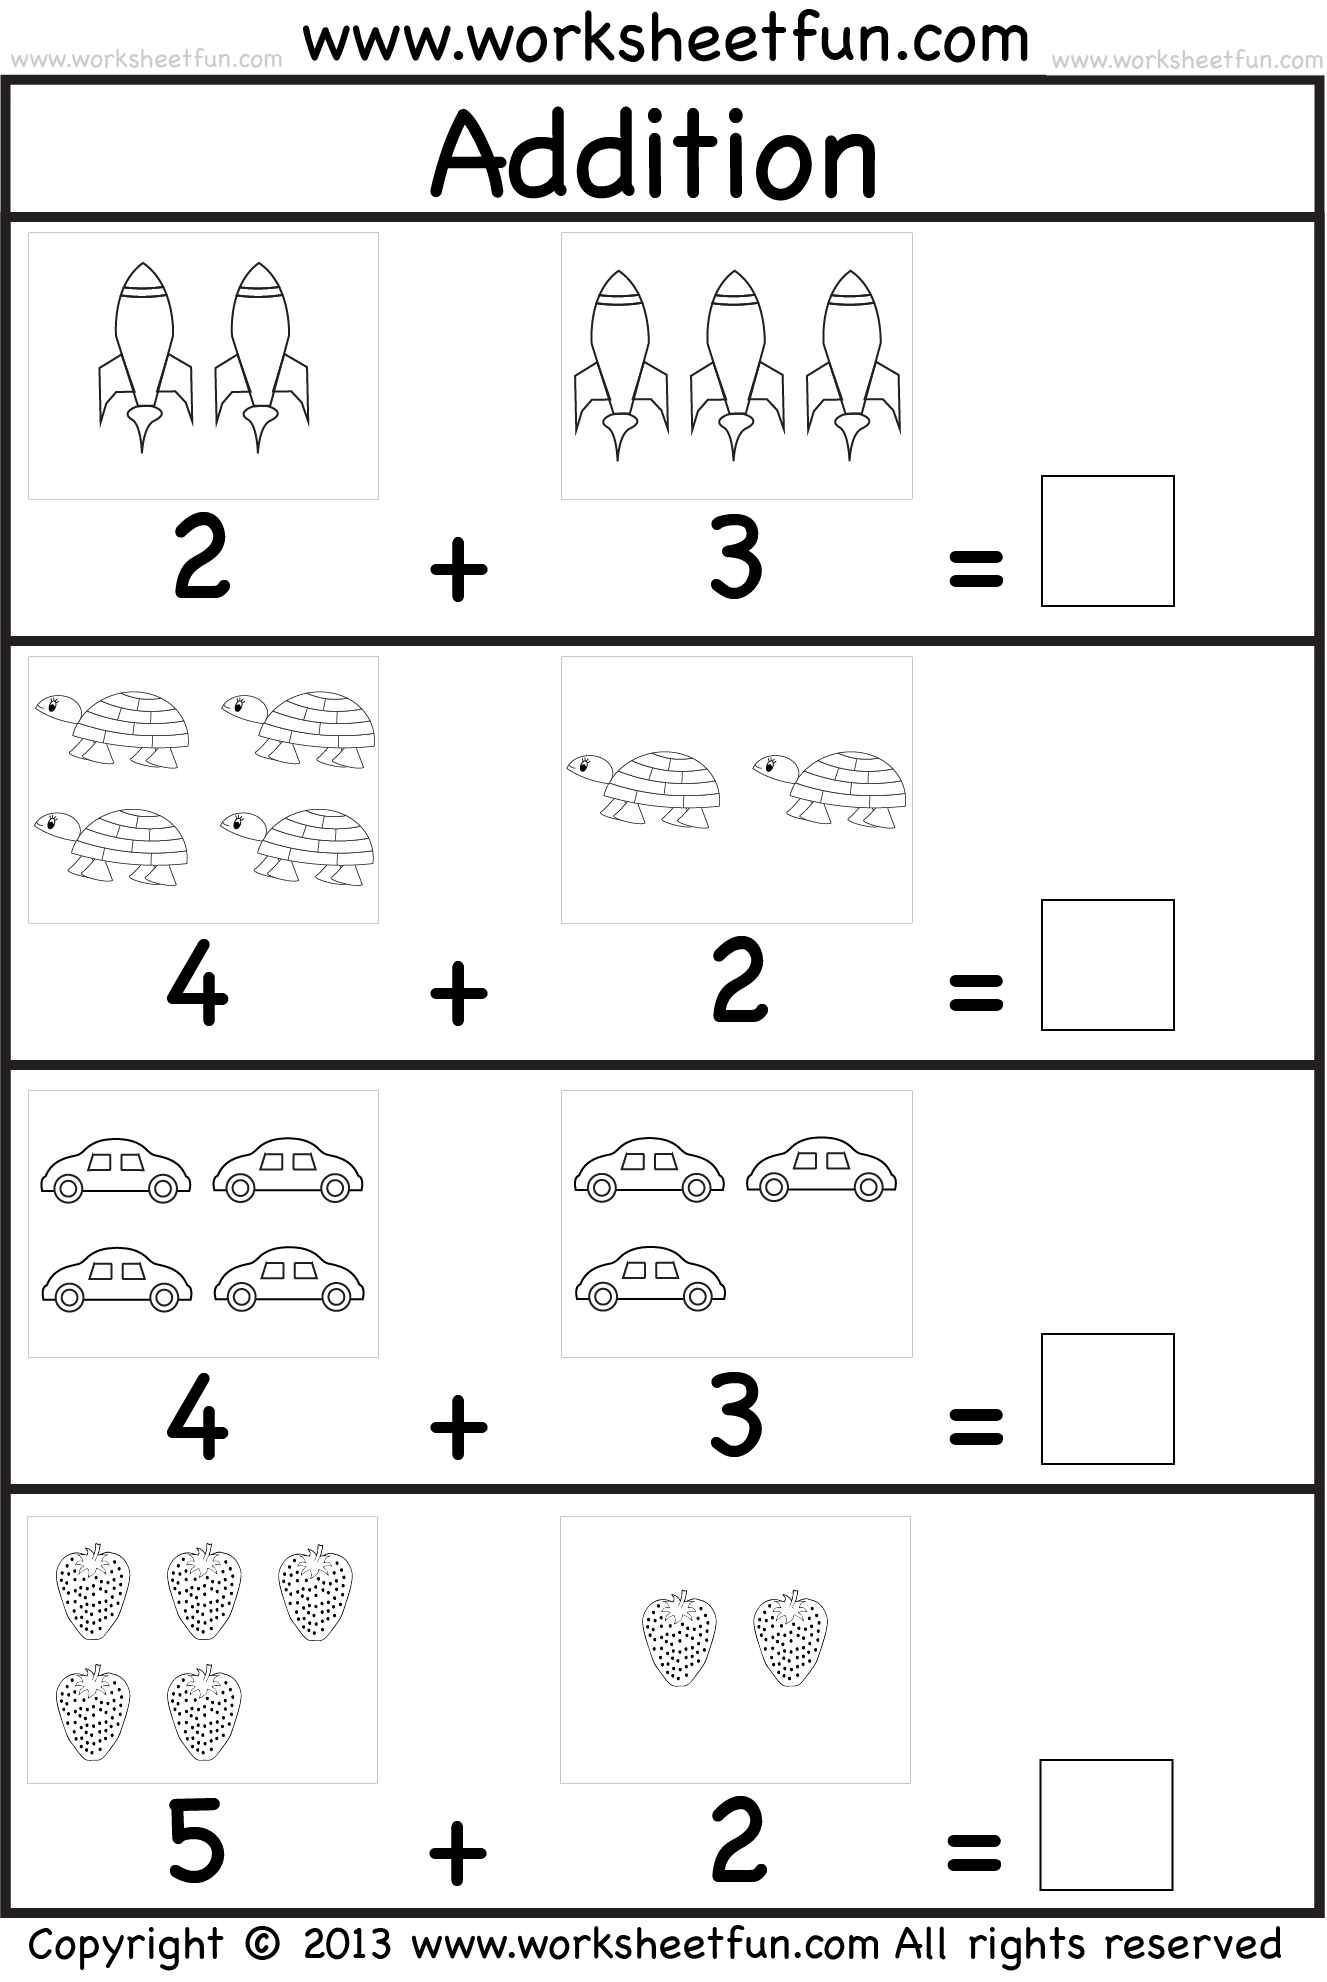 addition worksheet this site has great free worksheets for everything from abcs to math